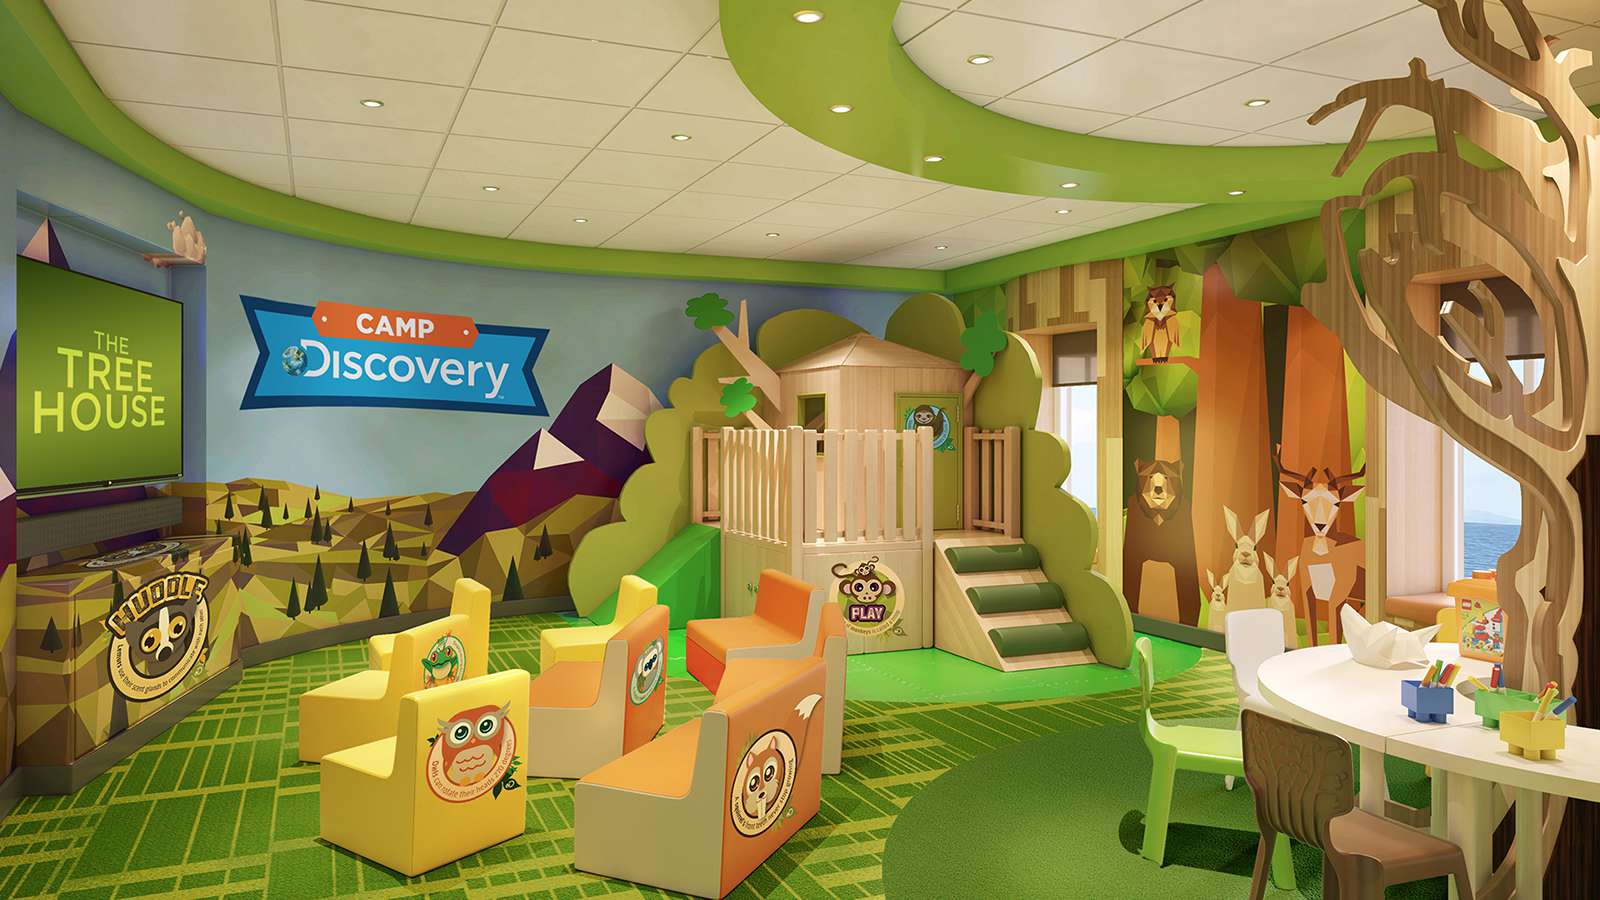 Childrens area with The Tree House and Camp Discovery on wall, wooden tree house, and TV